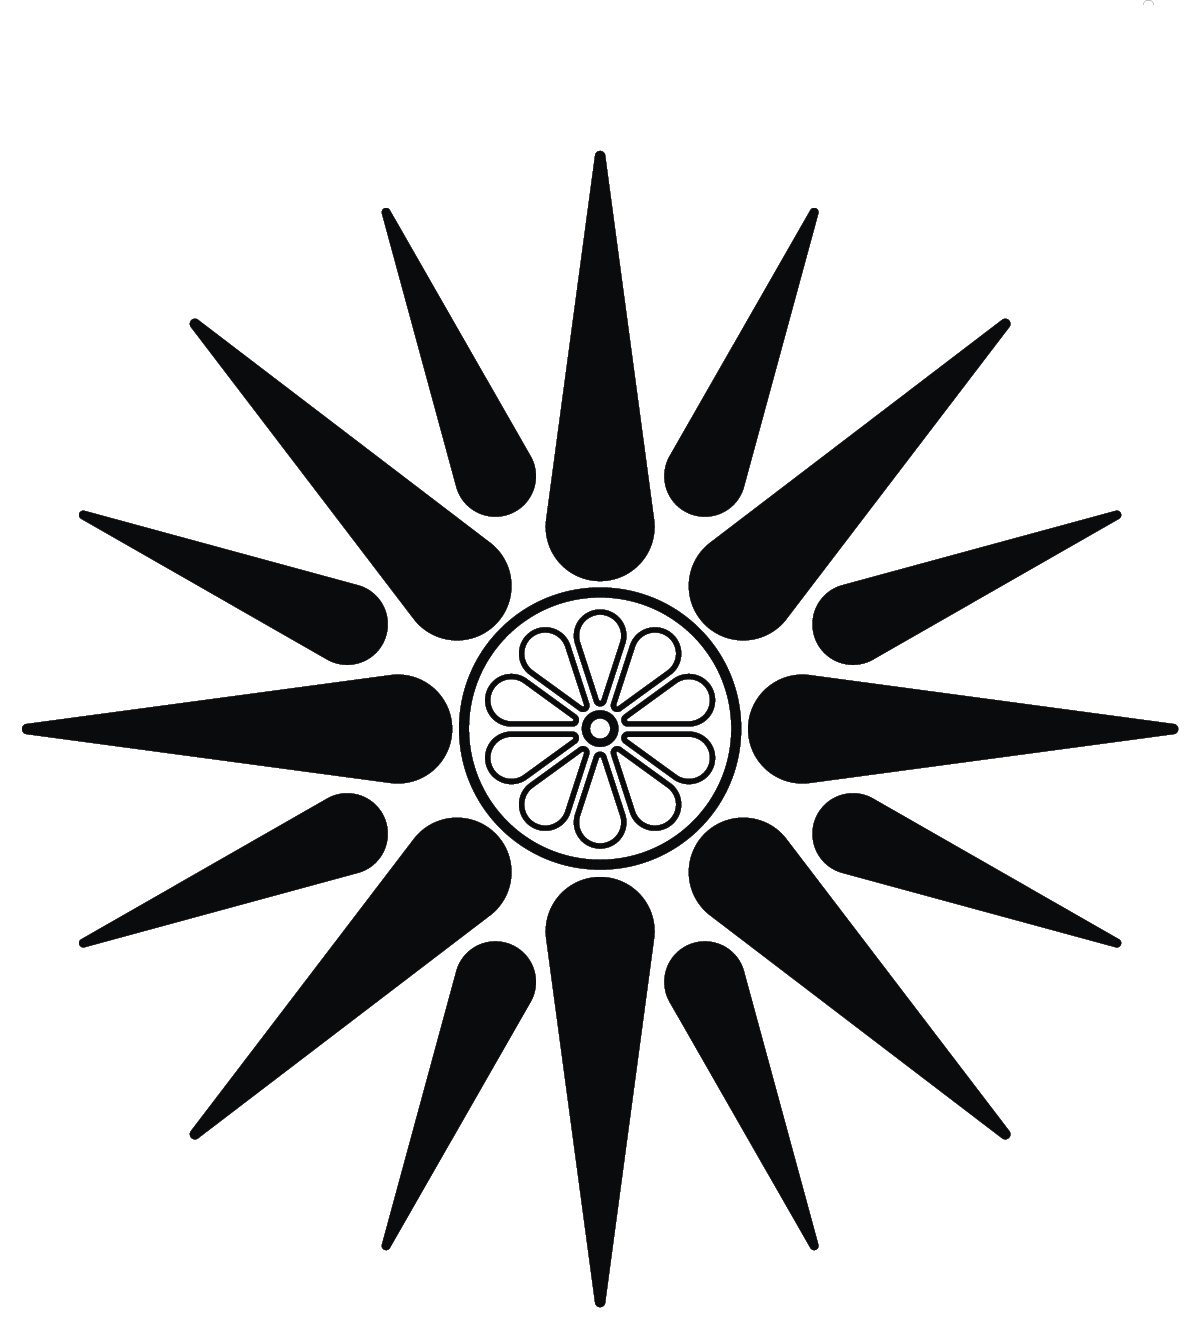 Ancient Macedonian royal symbol (Vergina, Vergina Sun